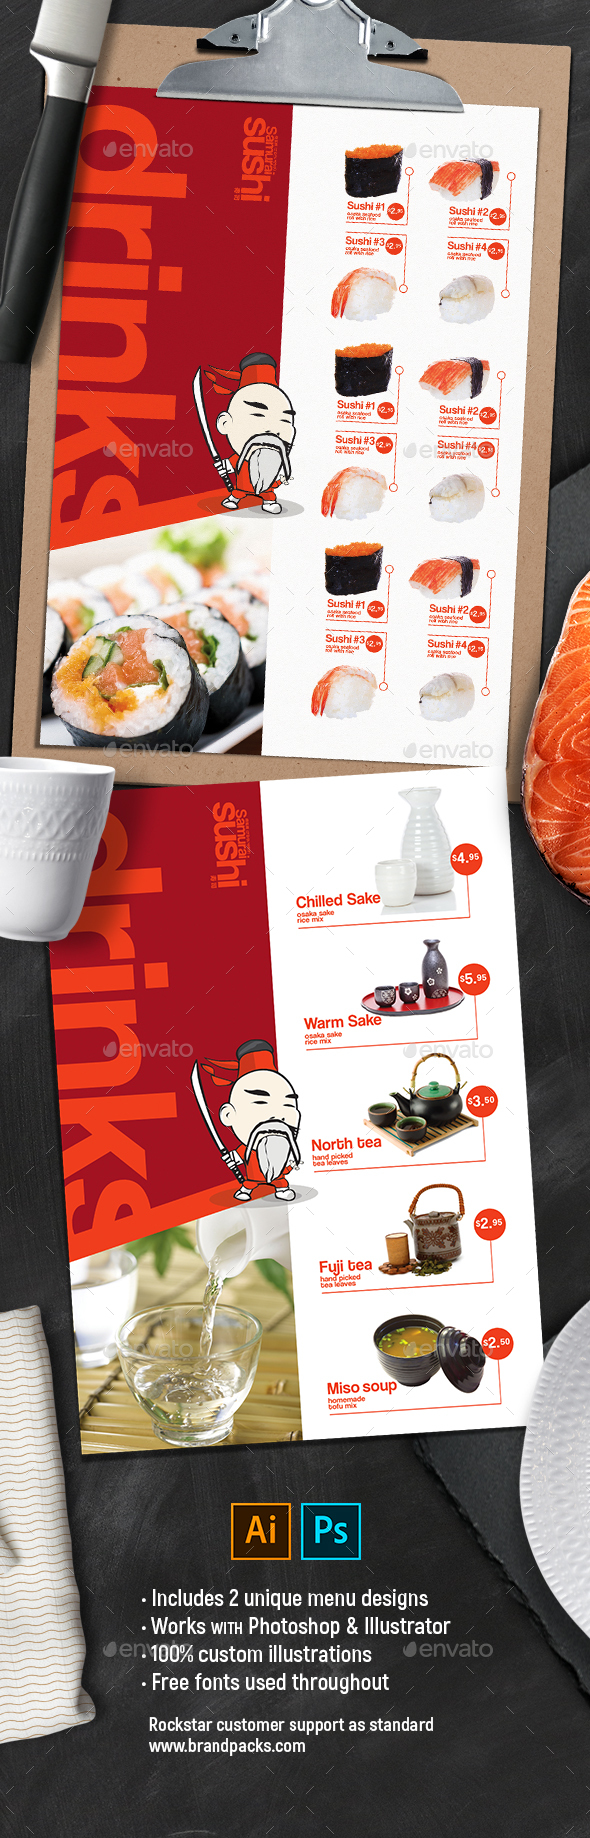 A4 Sushi Menu Templates - Food Menus Print Templates